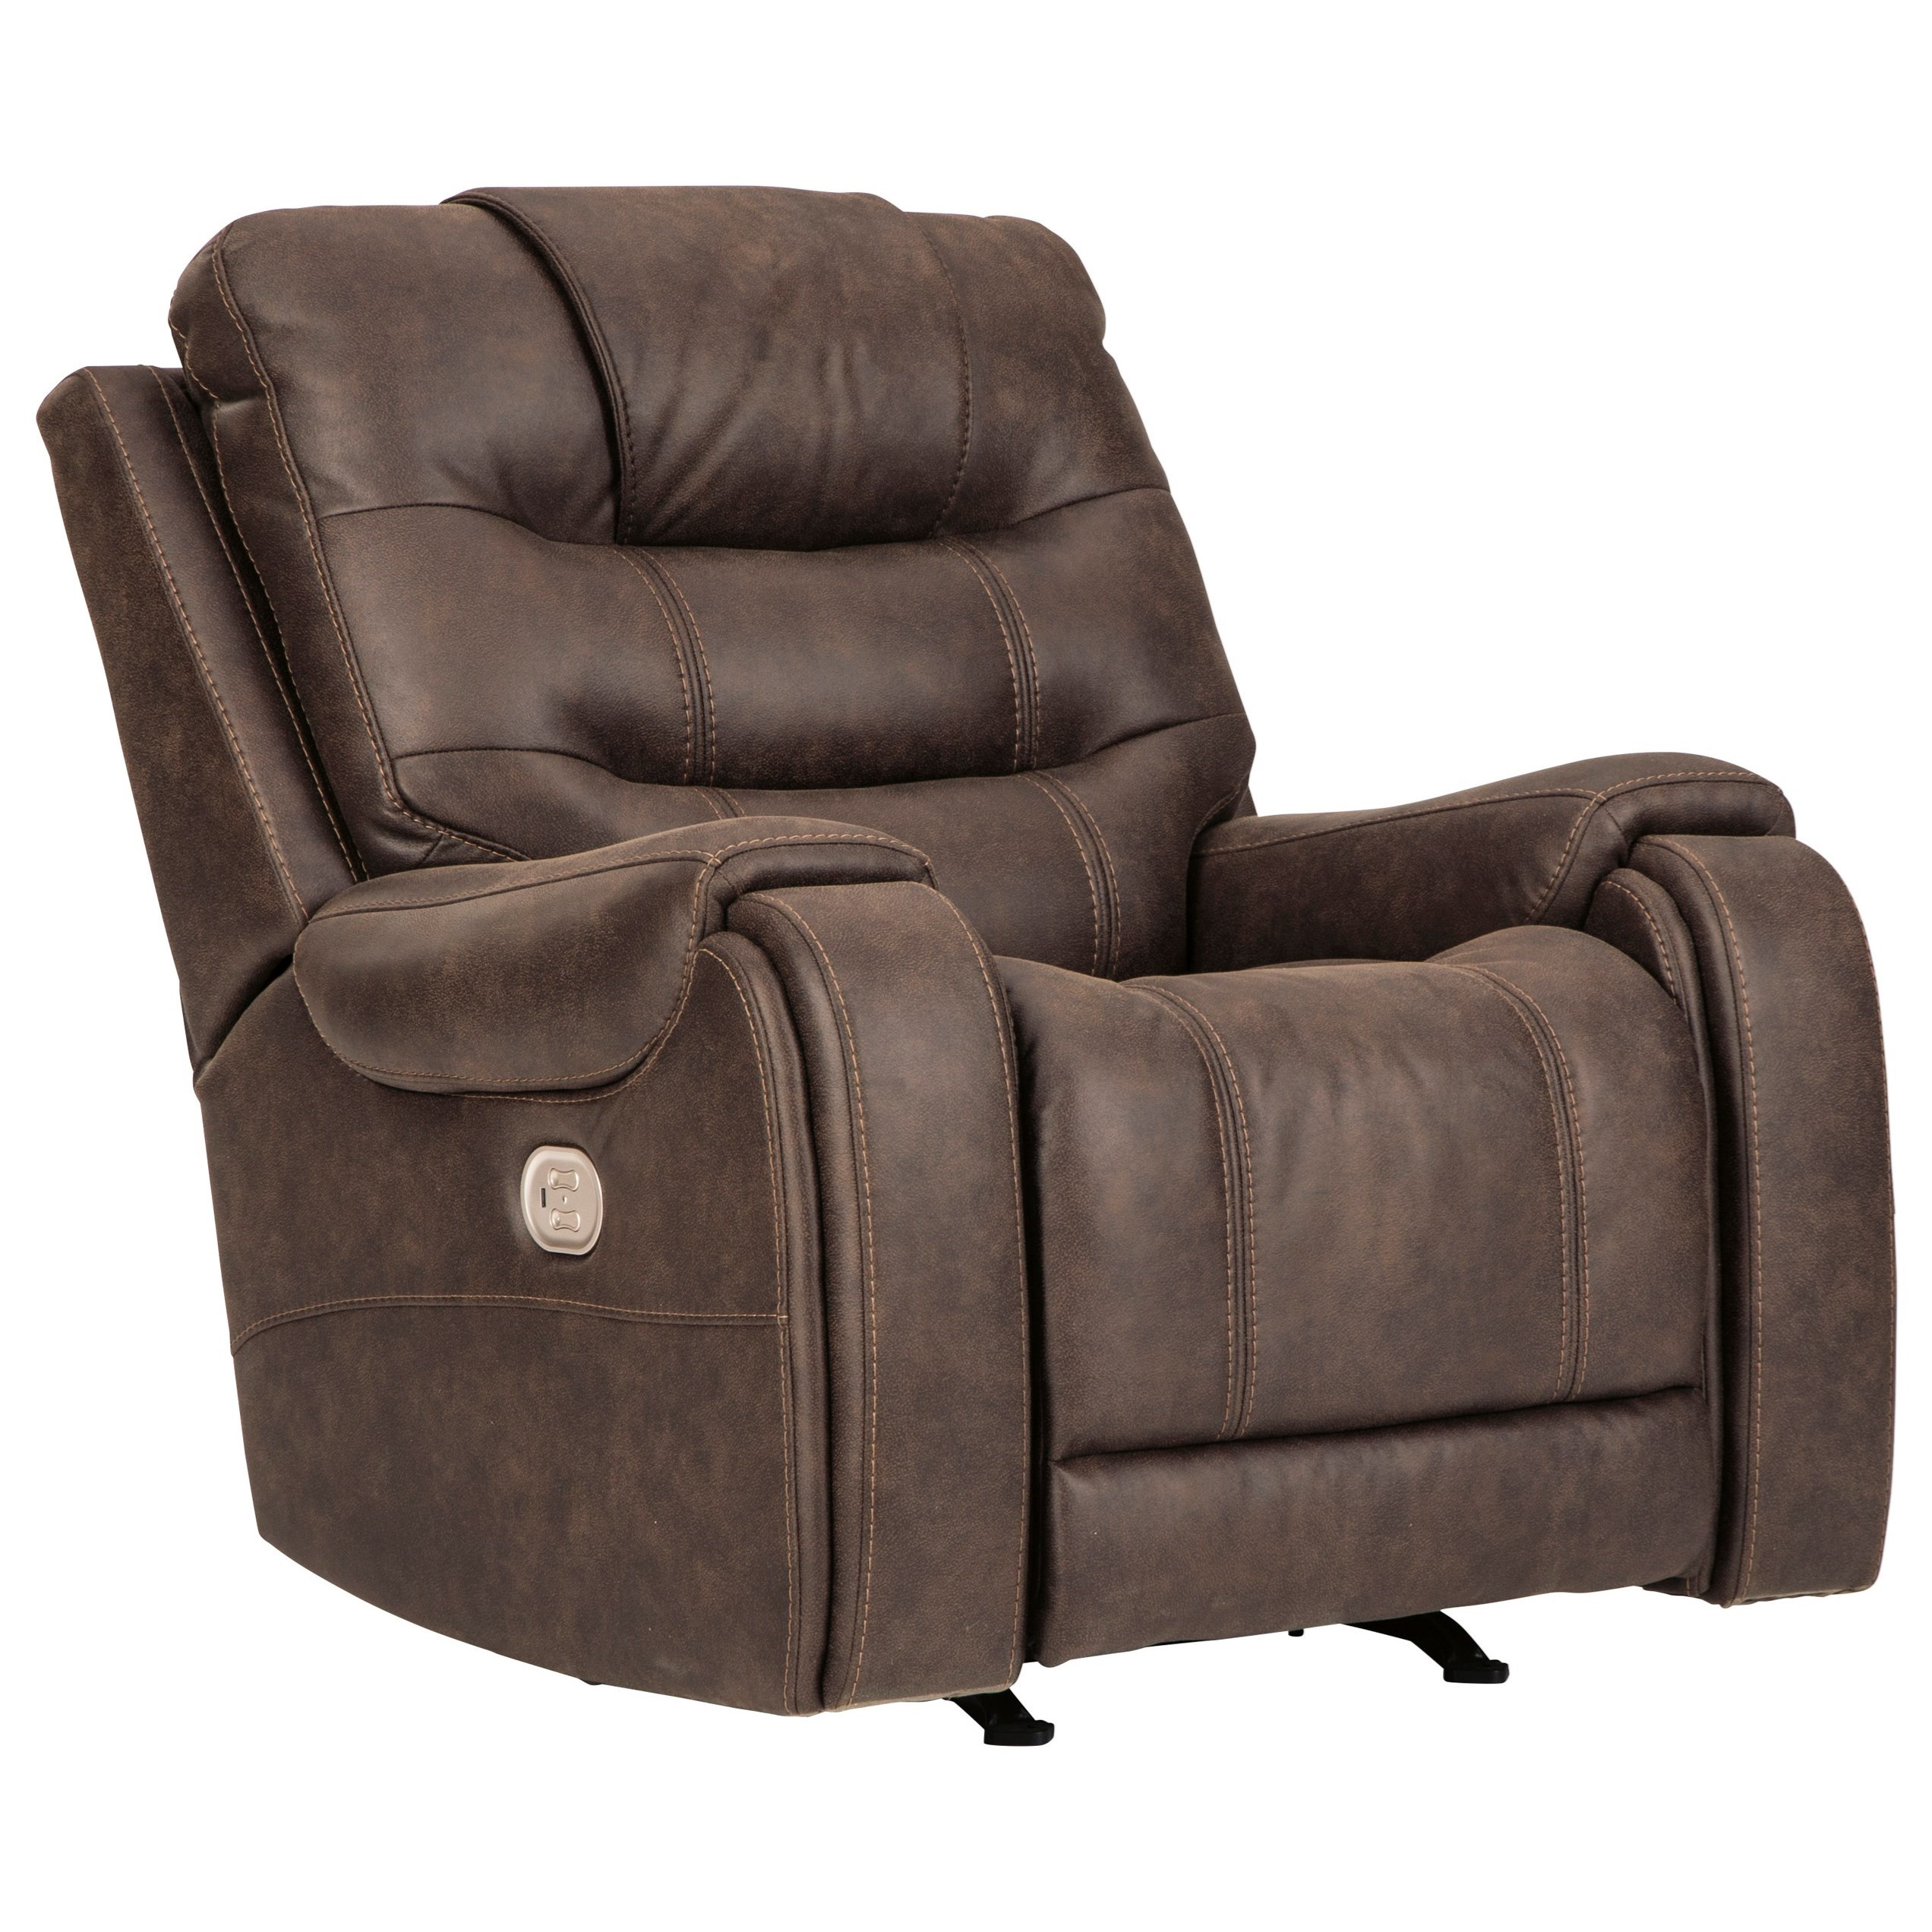 Yacolt Power Recliner with Adjustable Headrest by Signature Design by Ashley at Furniture and ApplianceMart